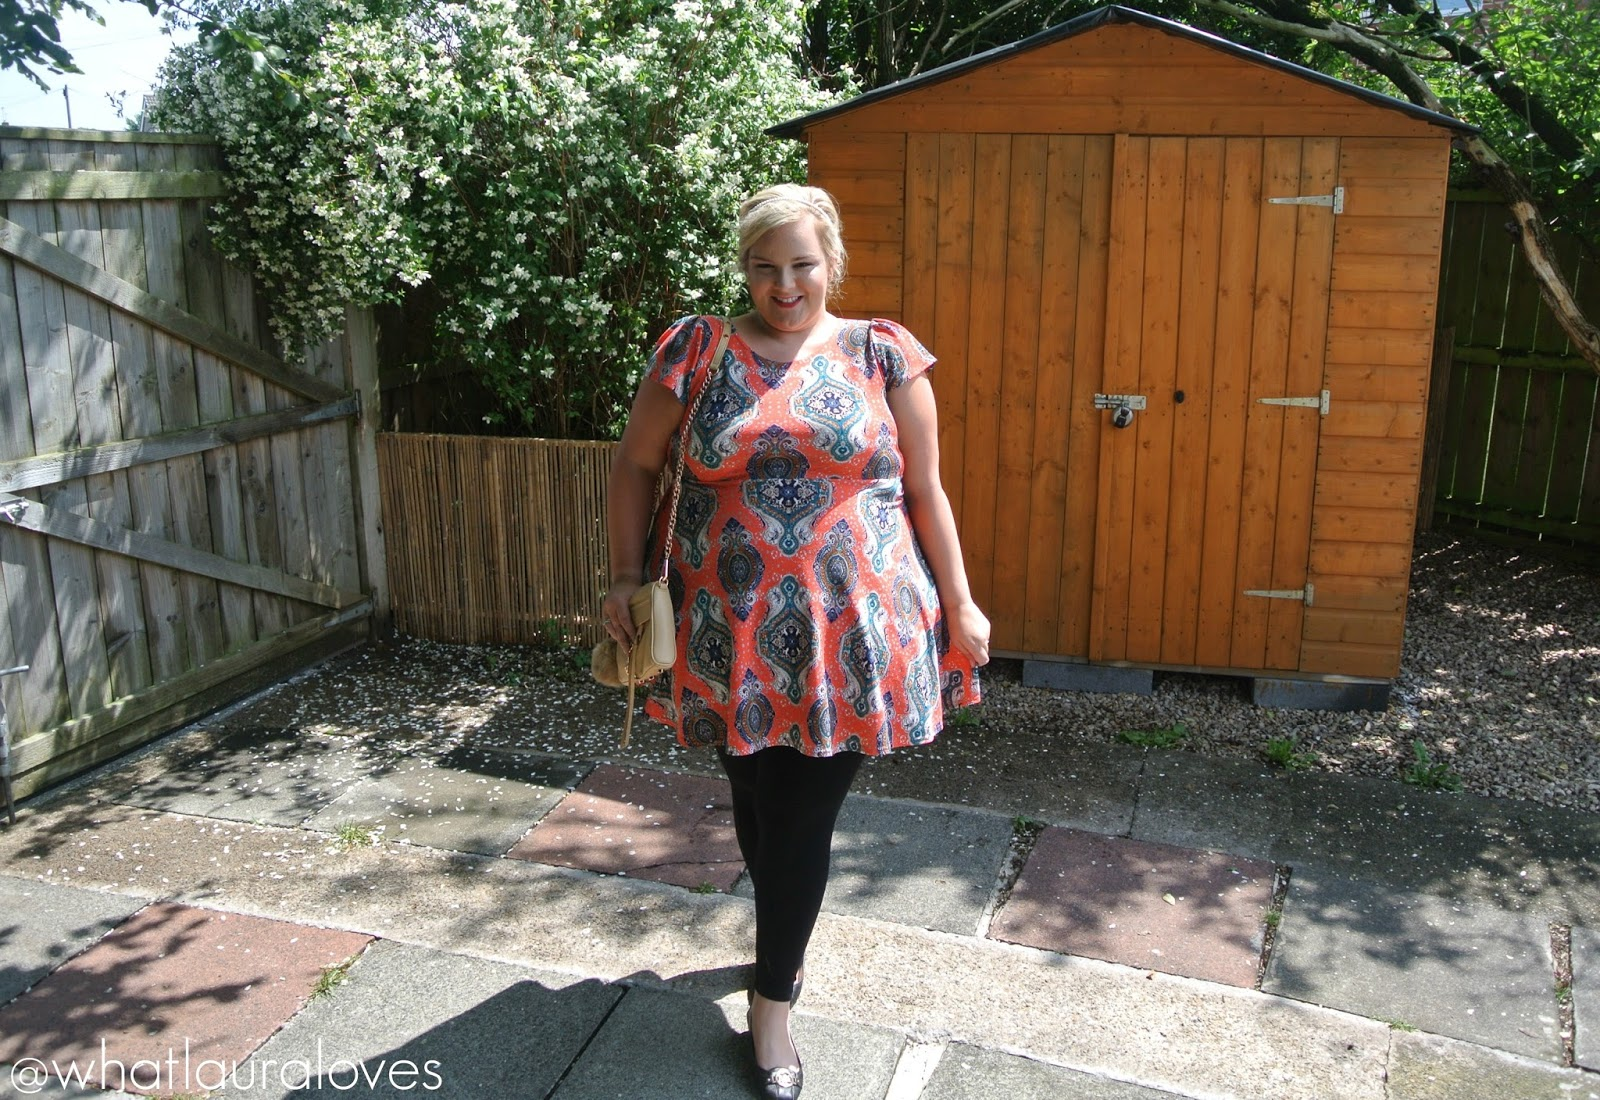 Plus Isabelle Printed Skater Dress from Boohoo